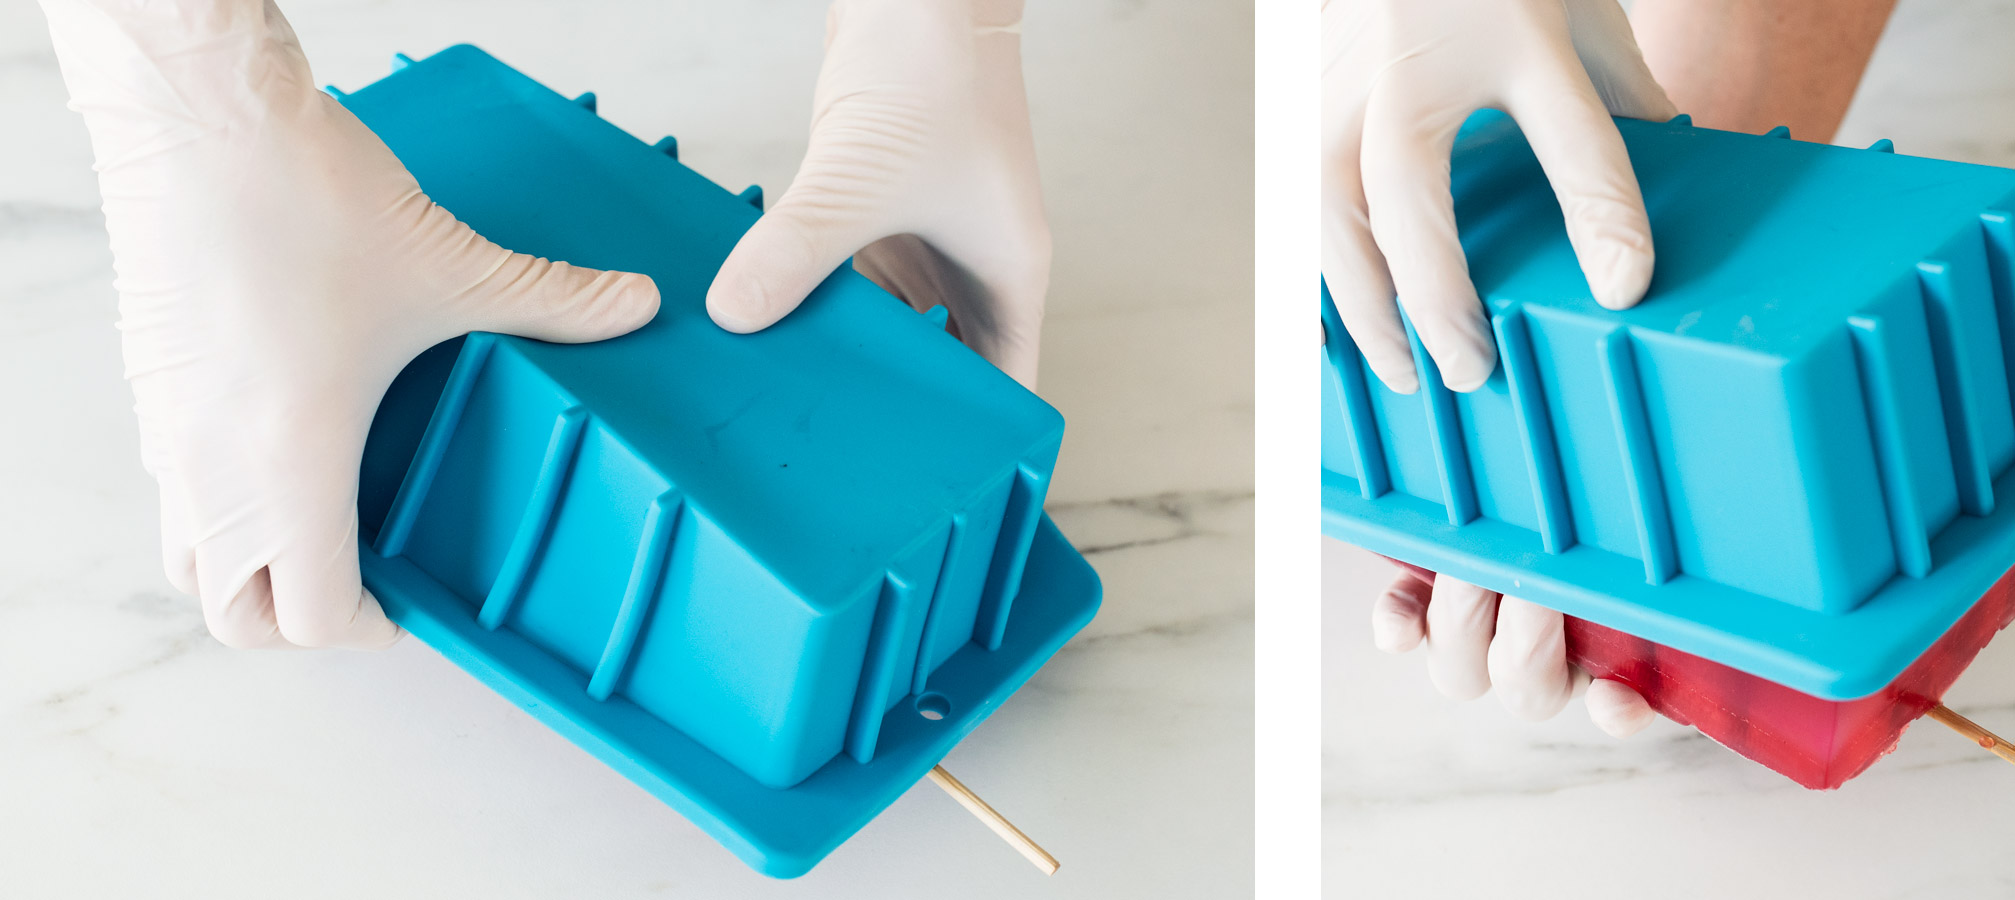 Removing soap from silicone mold